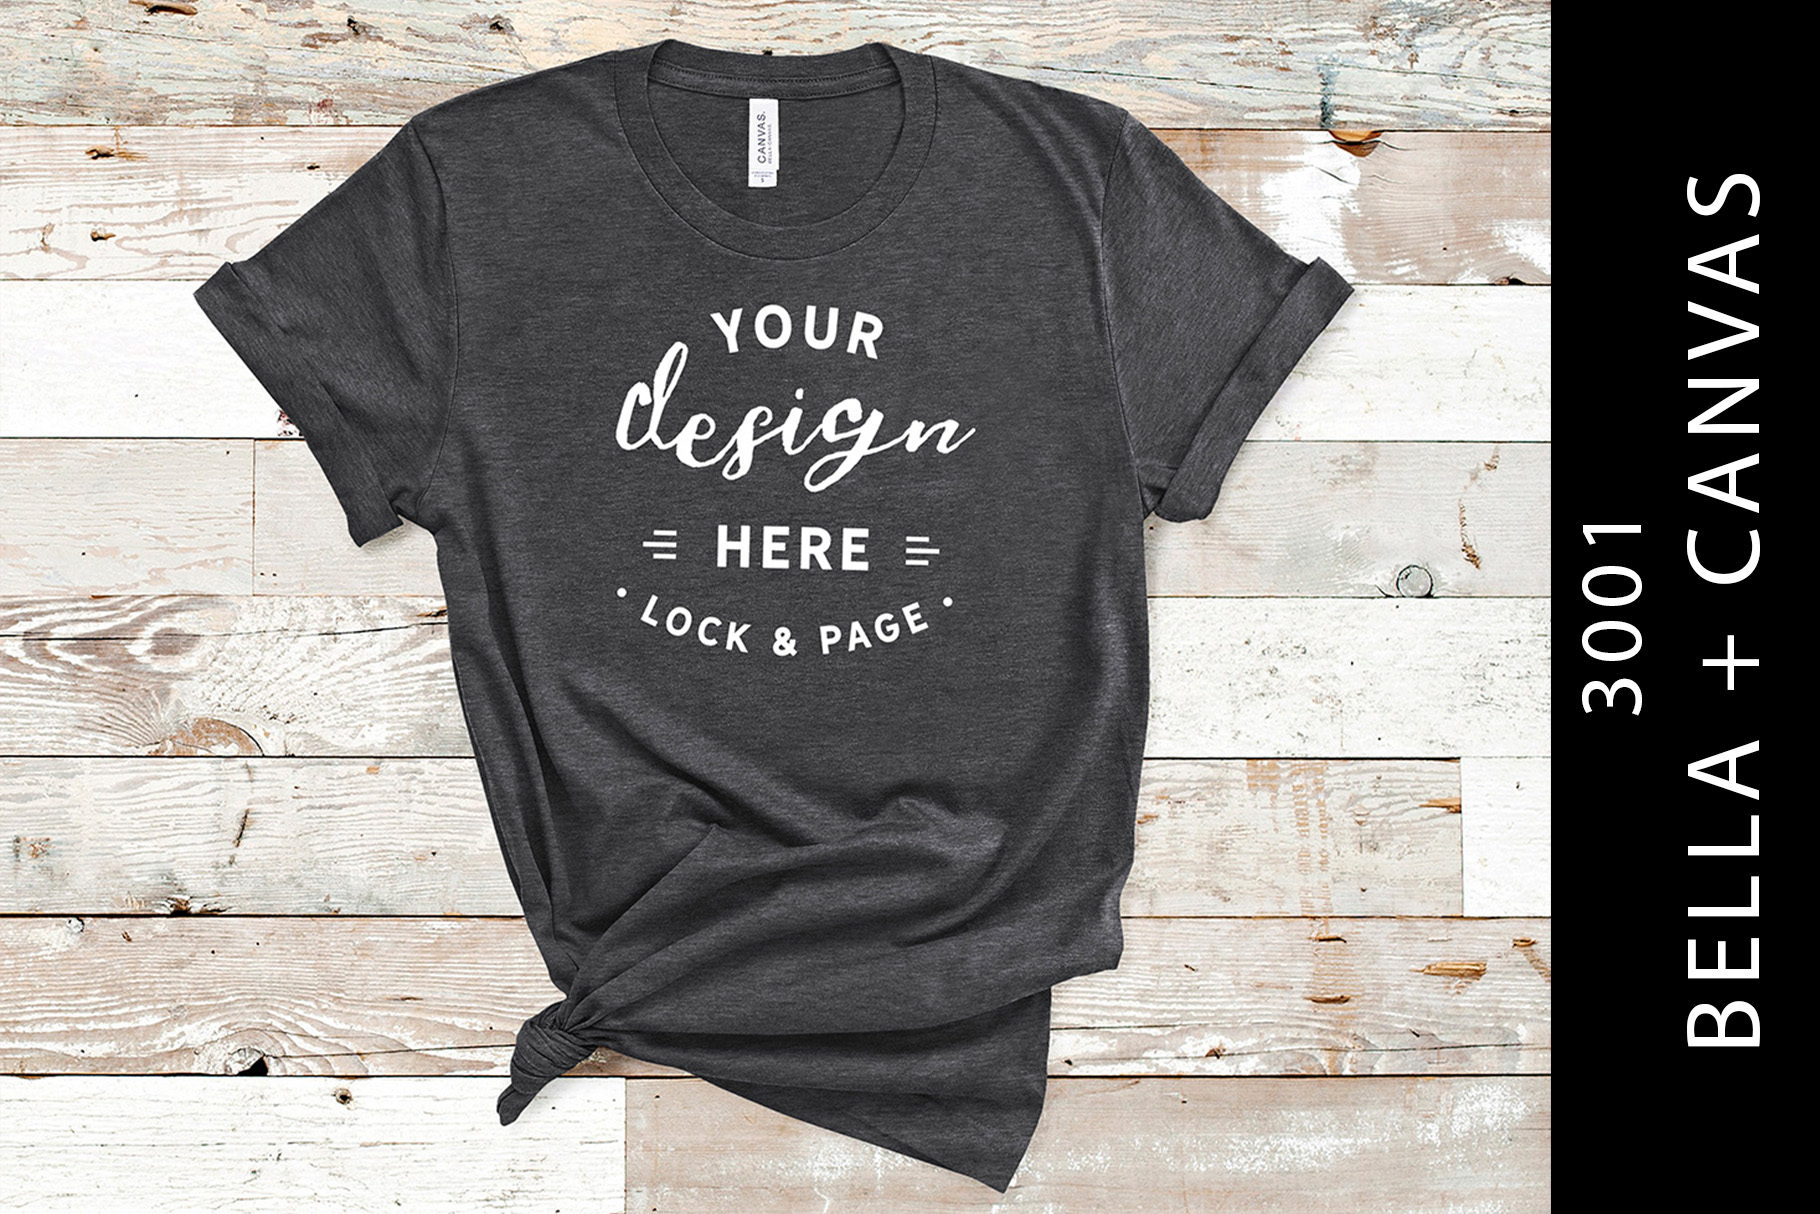 Download Free Dark Grey Heather 3001 T Shirt Mockup Graphic By Lockandpage for Cricut Explore, Silhouette and other cutting machines.